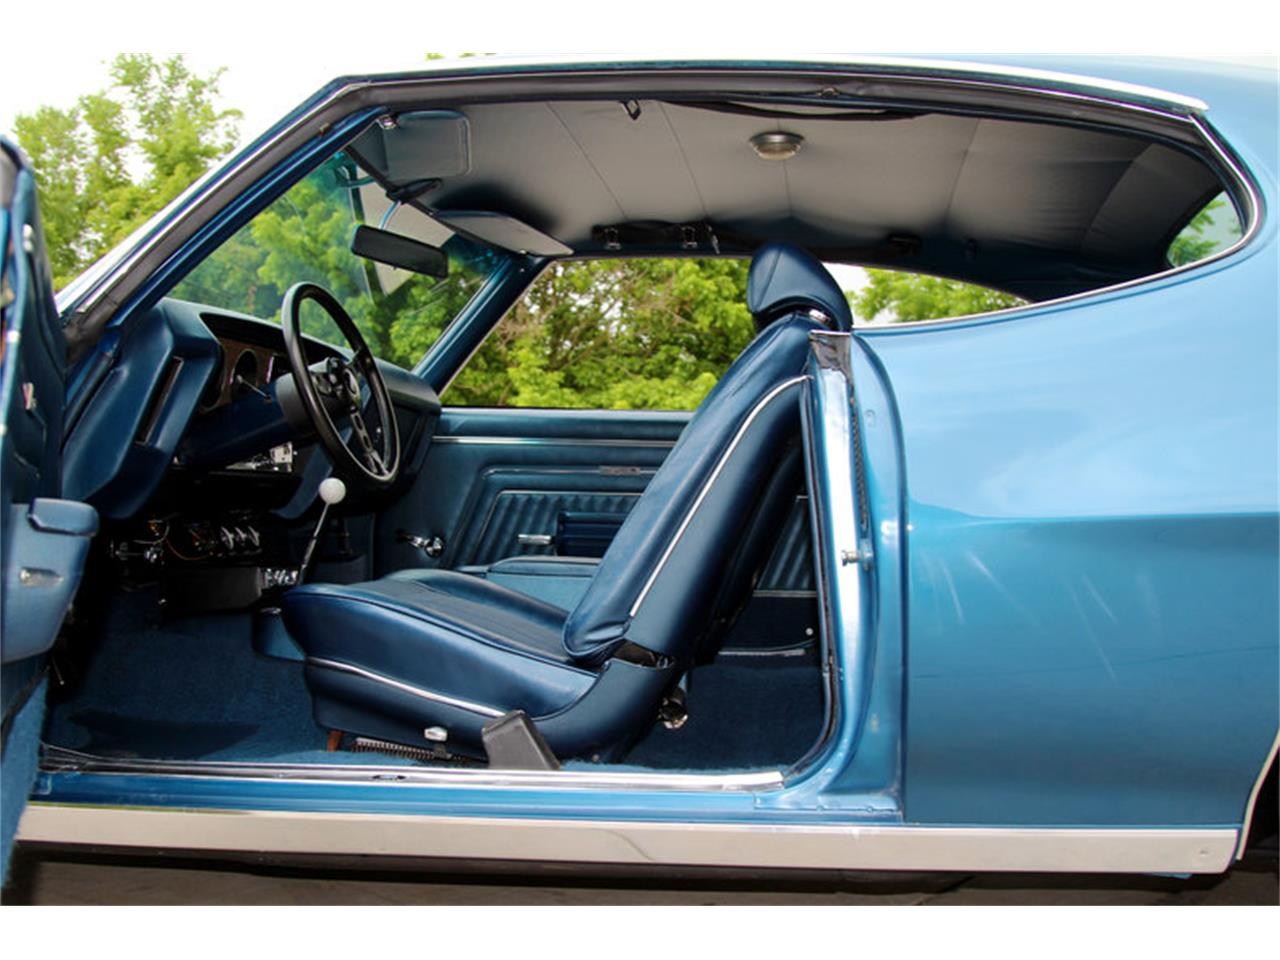 Large Picture of '70 Pontiac GTO located in Lenoir City Tennessee - $44,995.00 Offered by Smoky Mountain Traders - LAT6